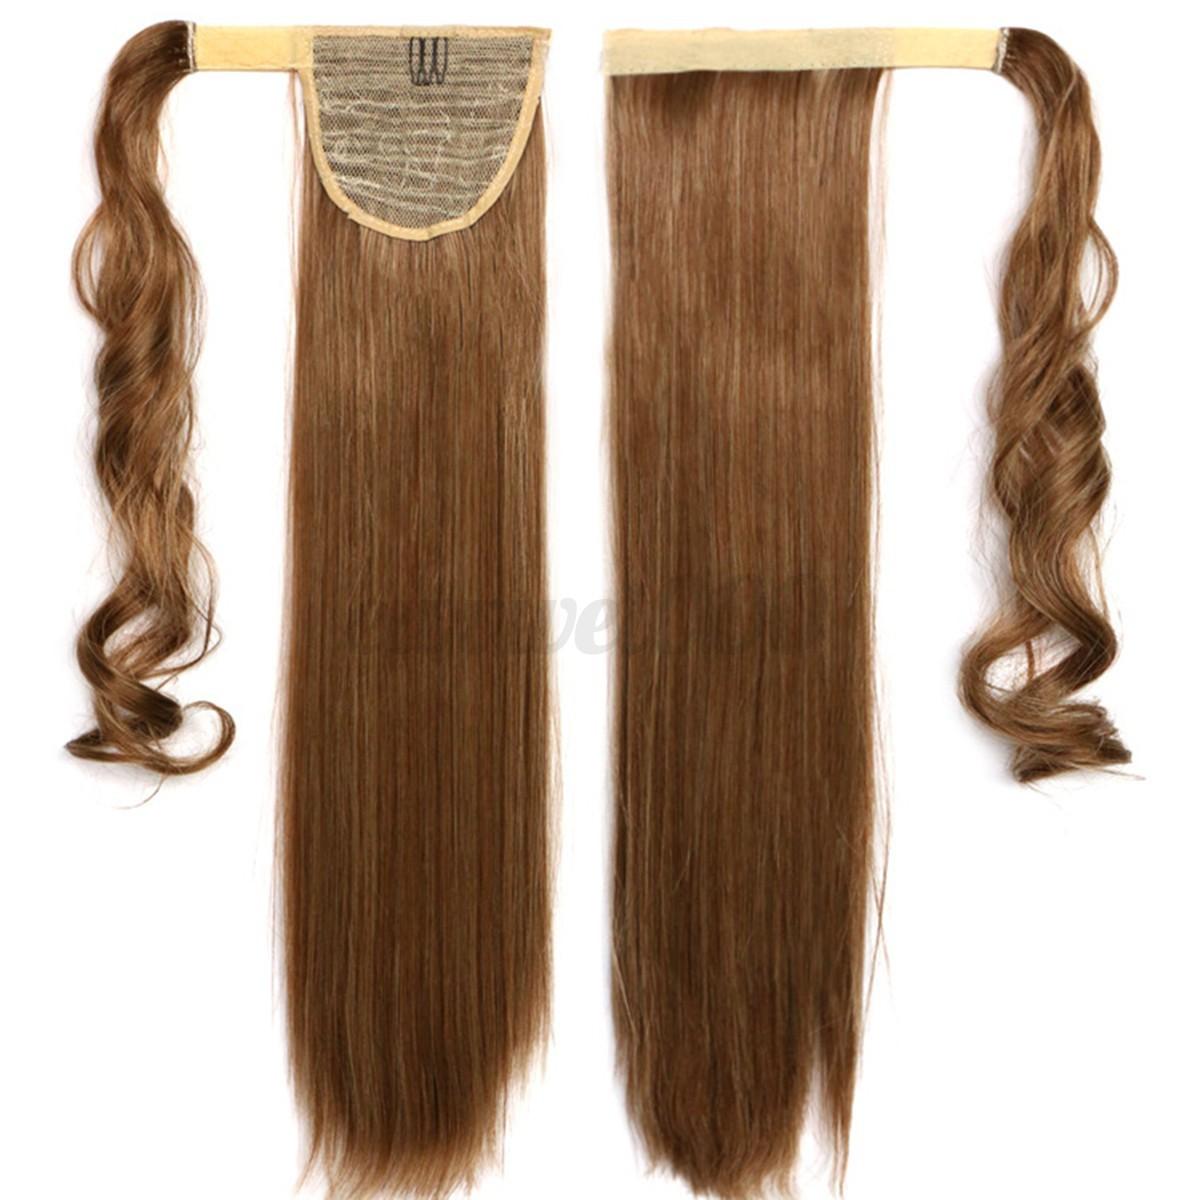 Extension Hair Pony Tail Prices Of Remy Hair